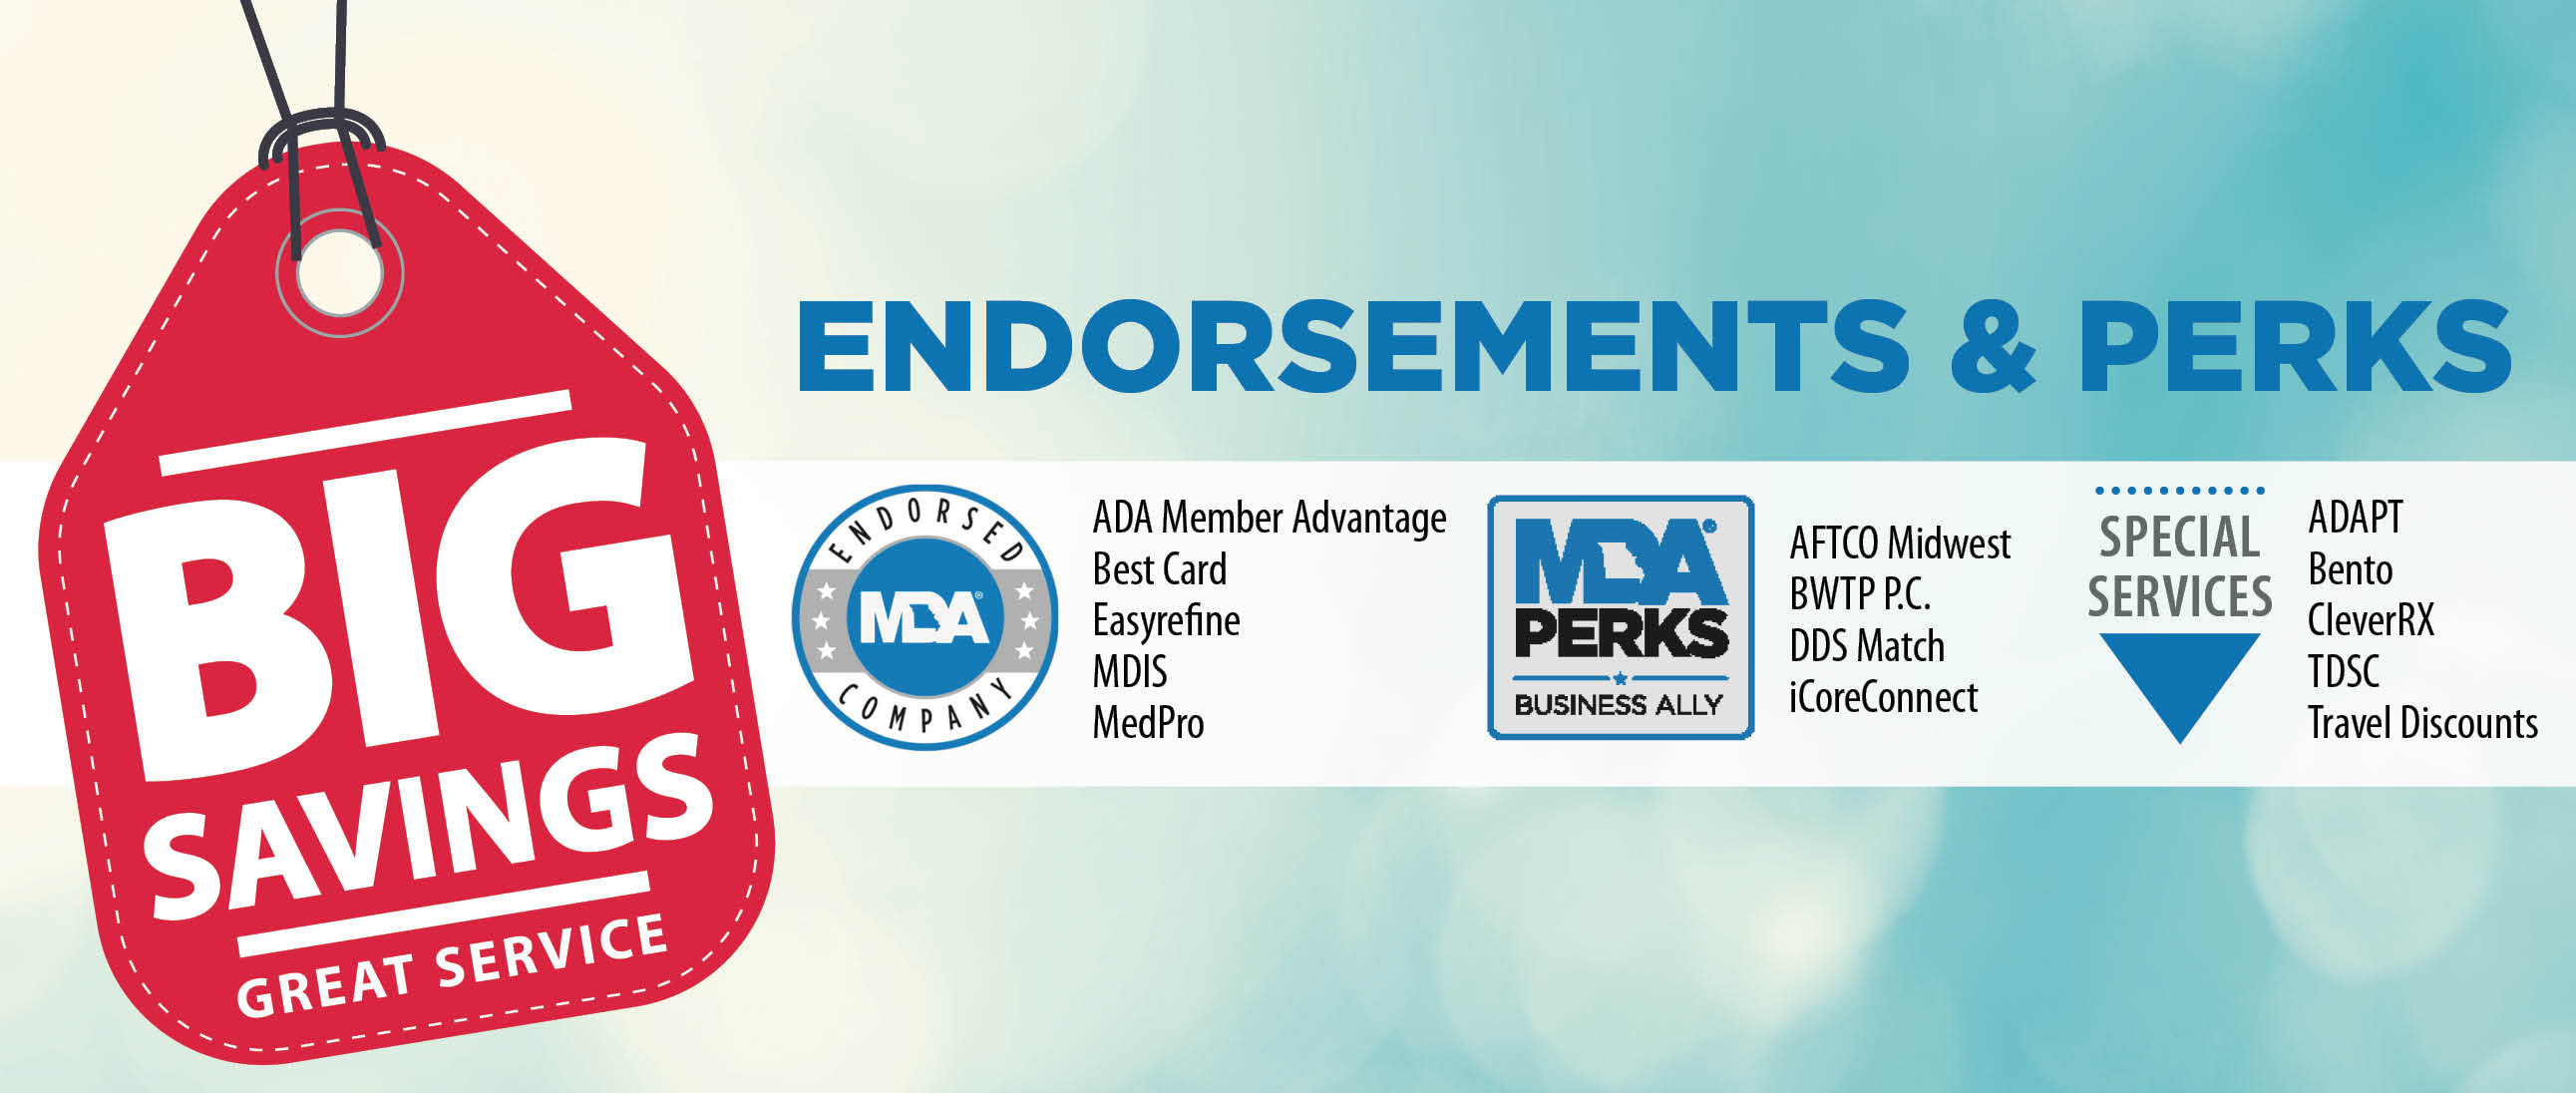 Perks and Endorsements